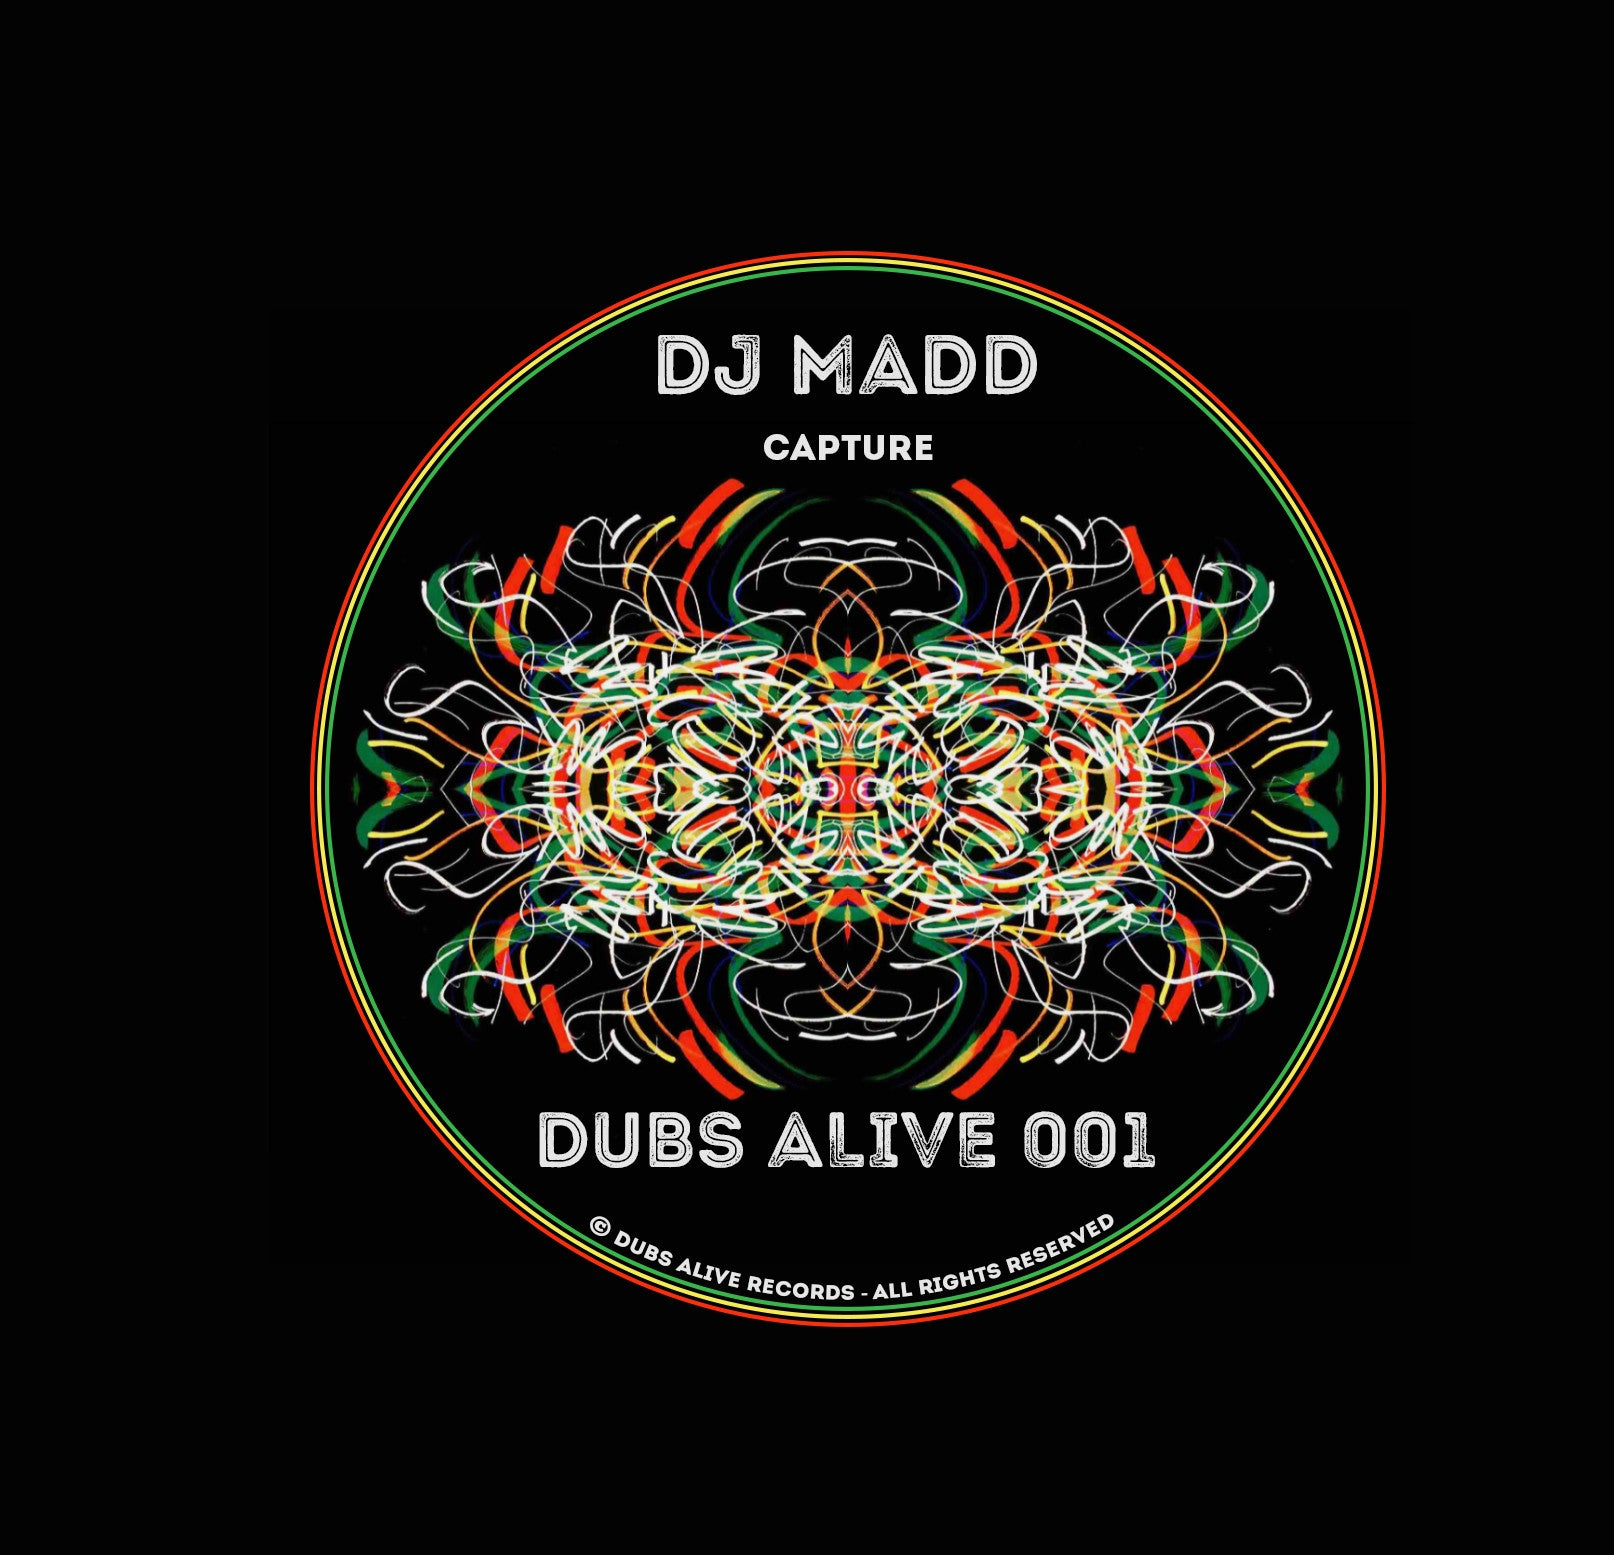 "DJ Madd - Capture / Slatahouse Dub [180g 12"" Vinyl] - Unearthed Sounds"